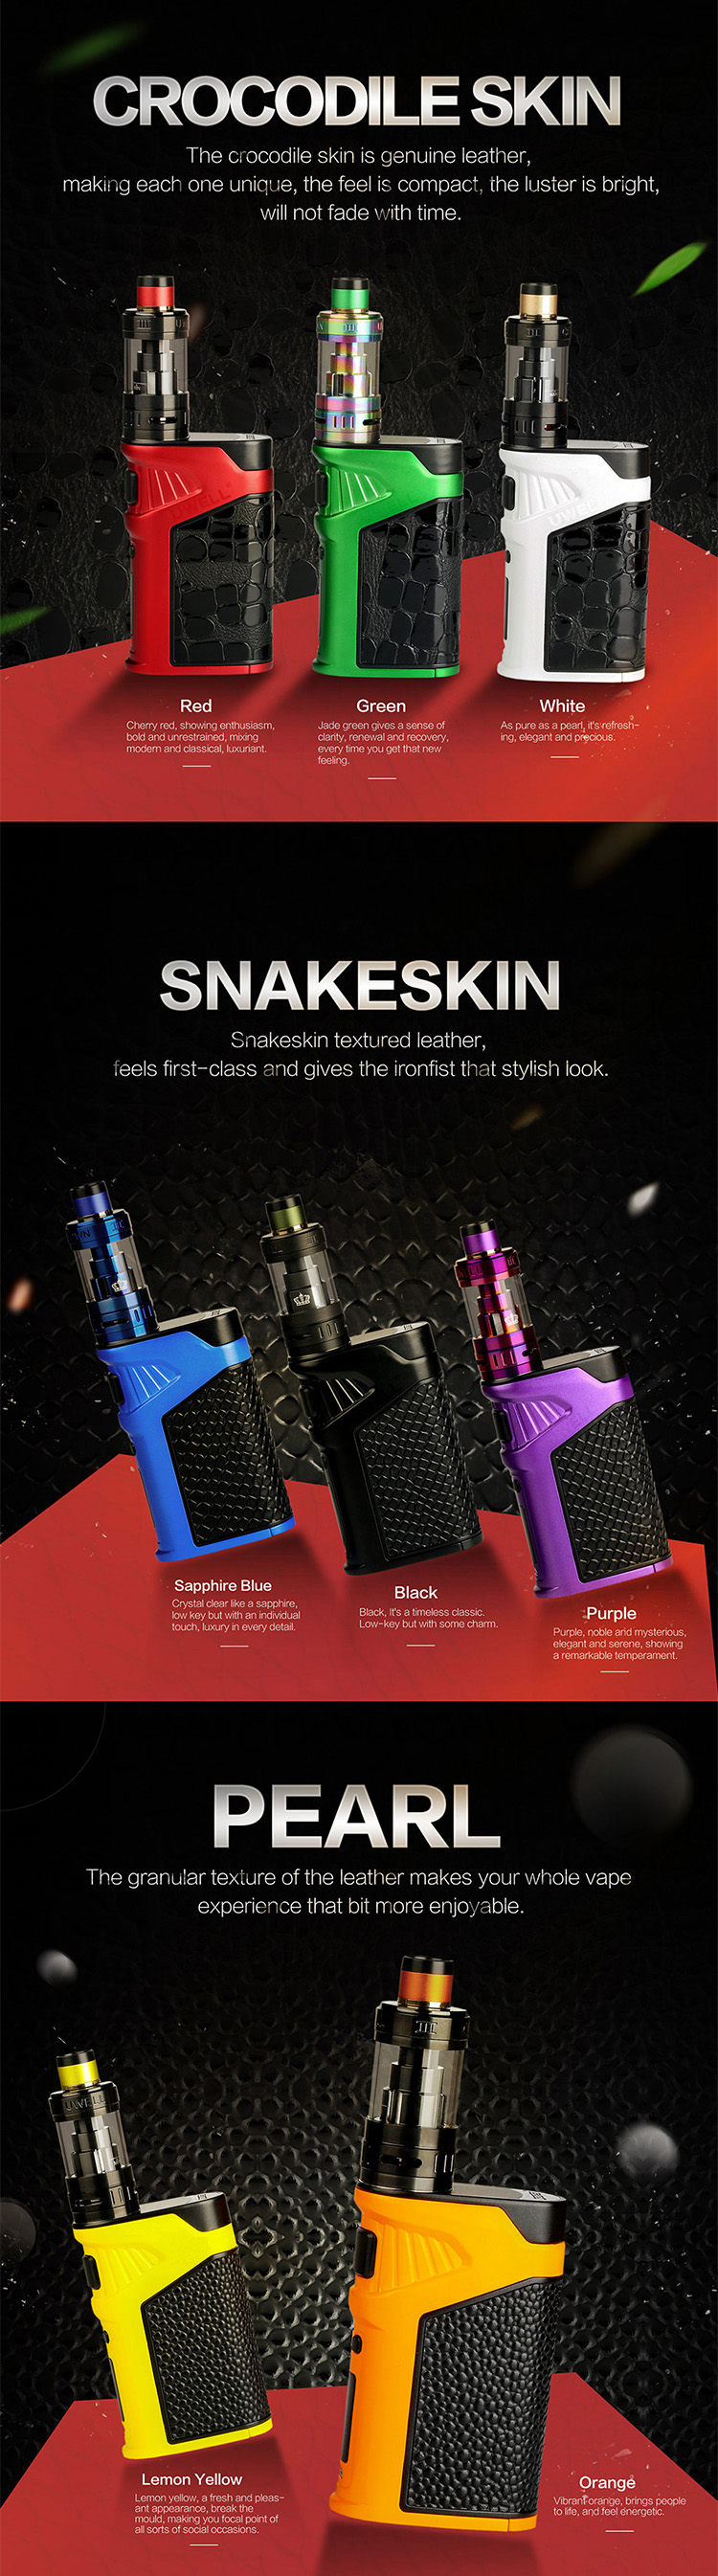 Uwell Ironfist 200W TC Box Kit with Crown 3 Material